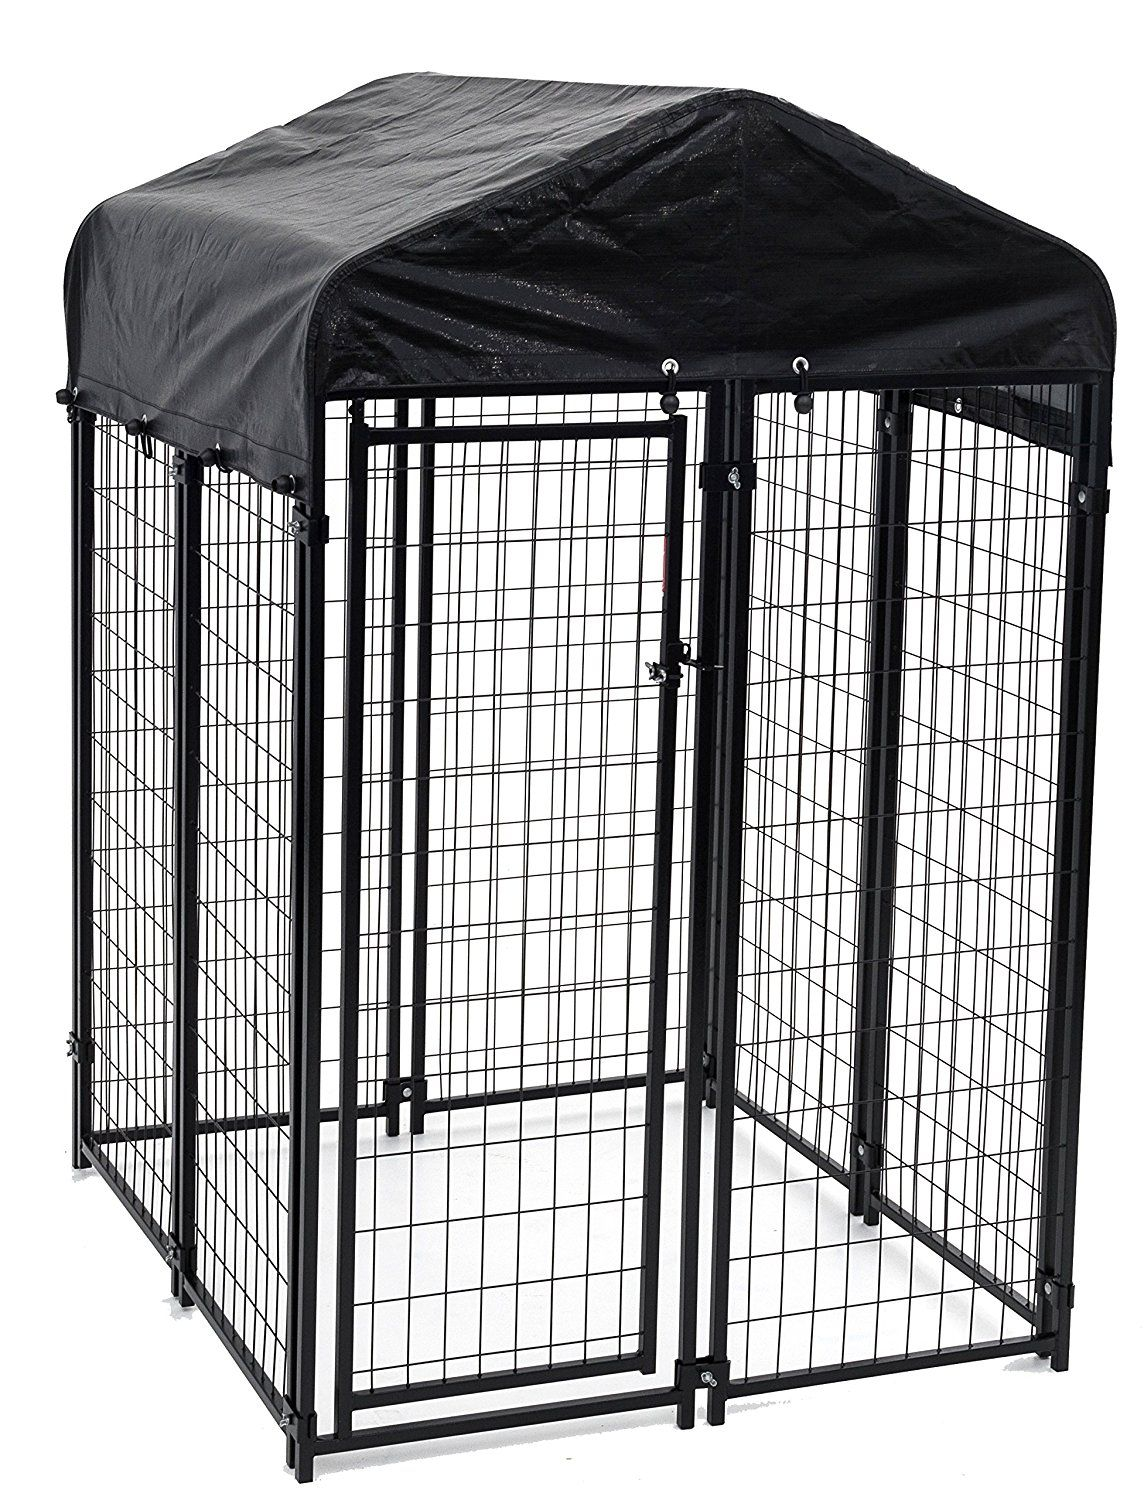 Lucky Dog Uptown Welded Wire Kennel *** Startling review